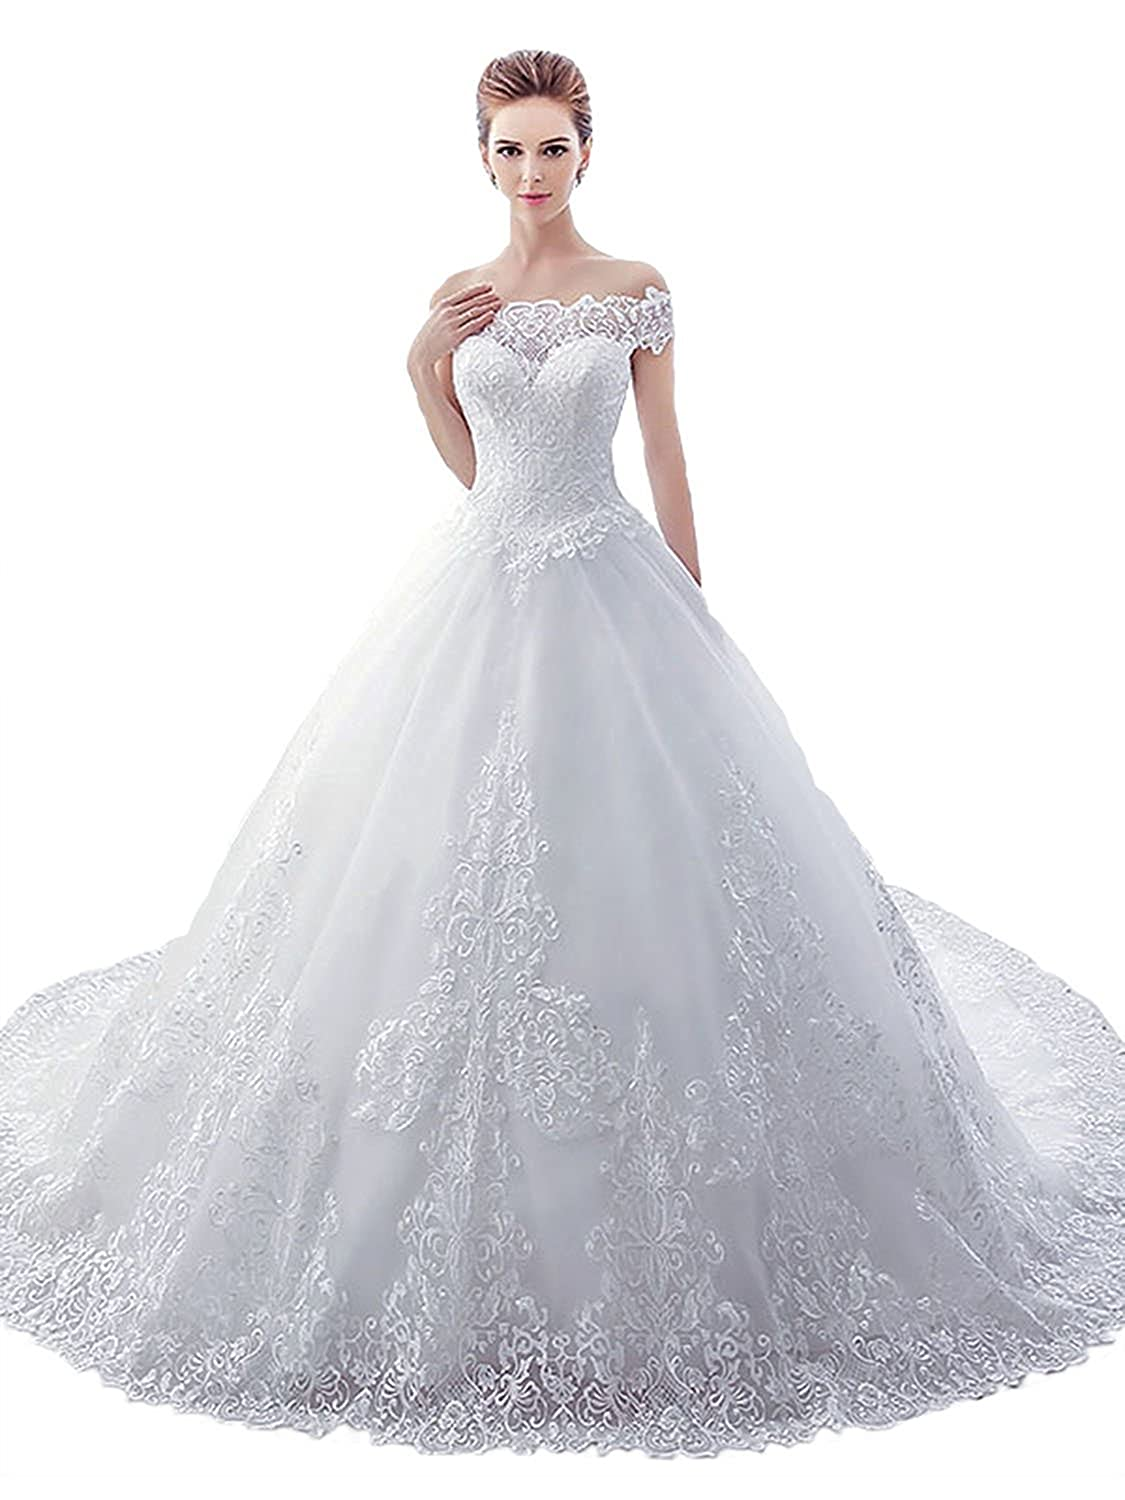 1e44ed002ba Babygirls Wedding Dress With Train Lace Tulle Applique Ball Gown Off  Shoulder For Bride Bridal Gowns at Amazon Women s Clothing store